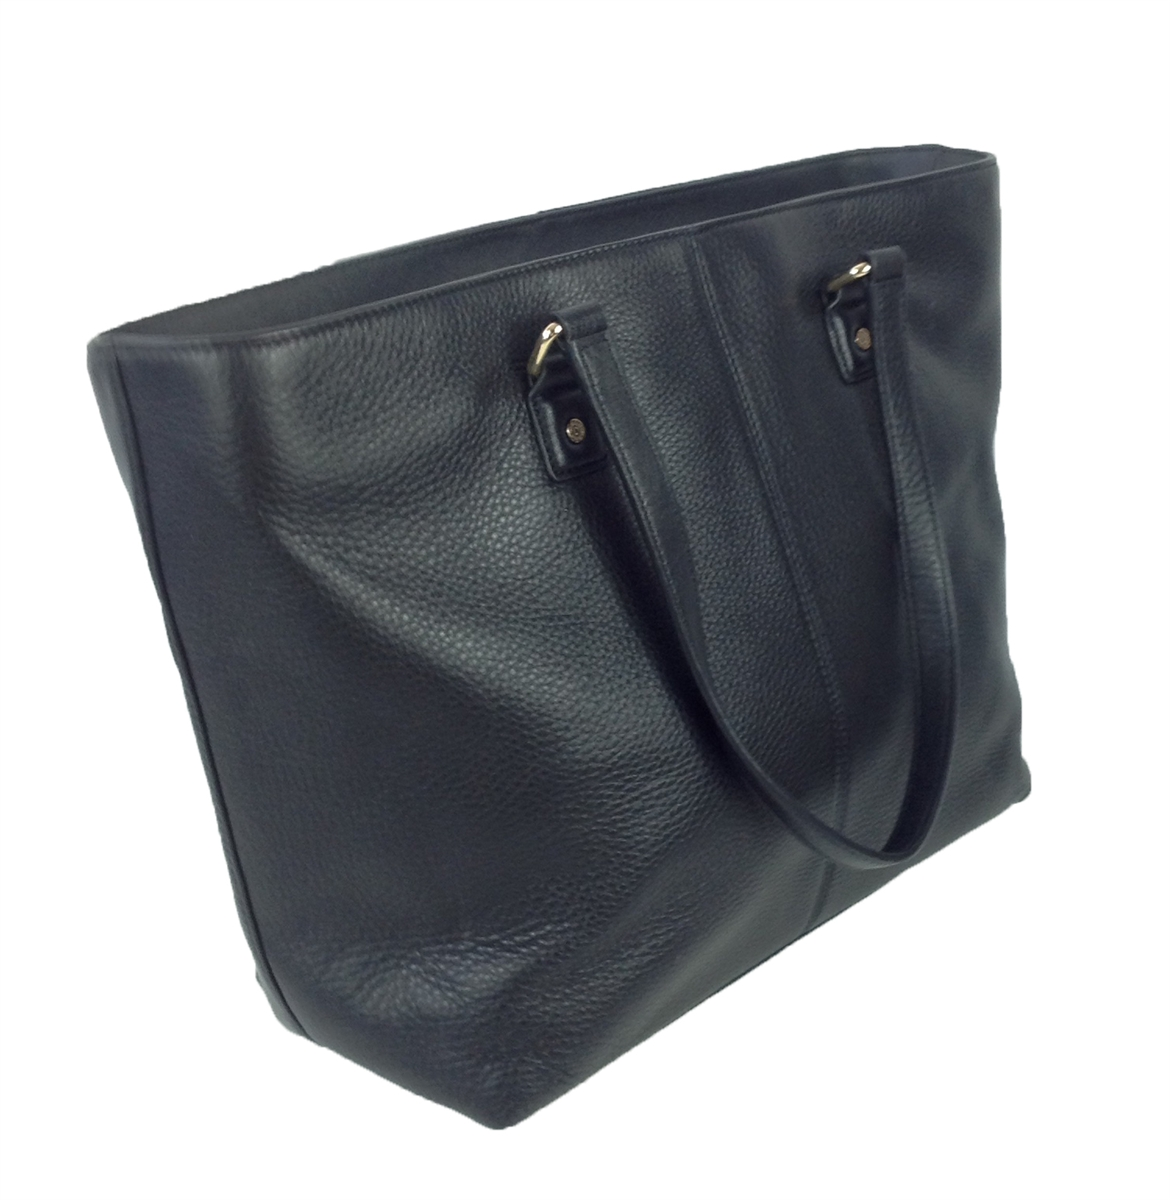 DKNY Soft Ego Leather N/S Tote, Black